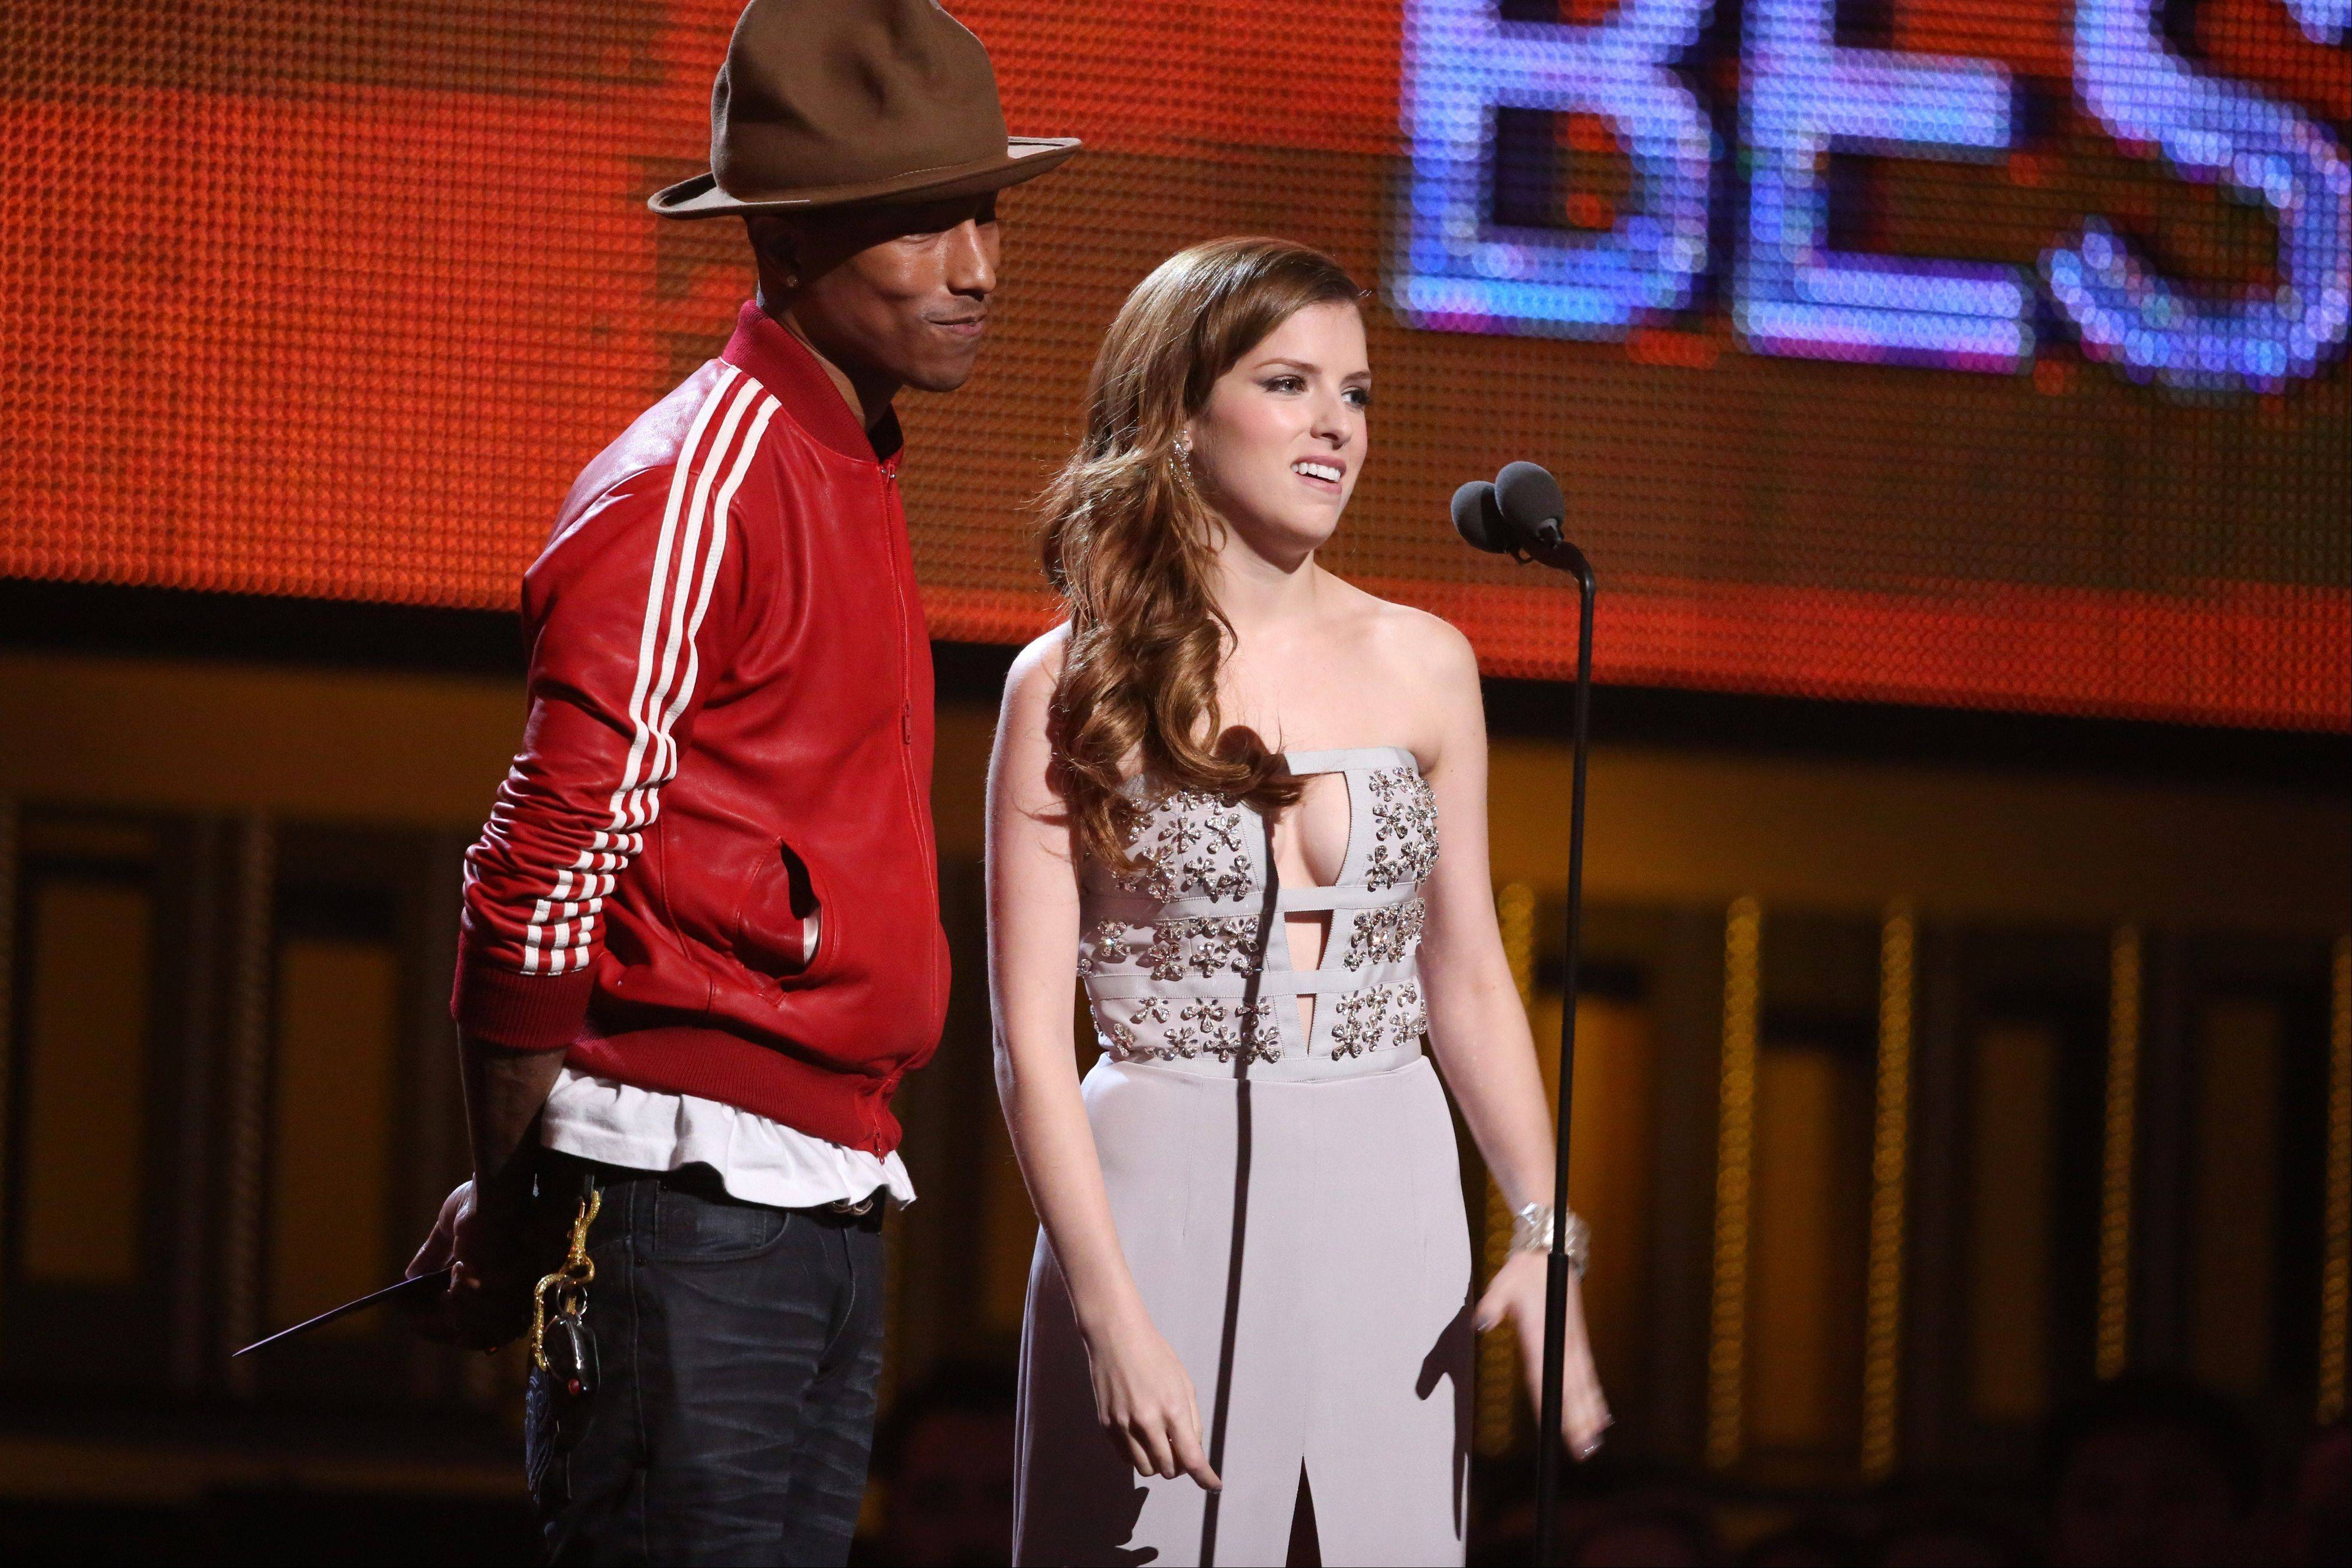 Pharrell Williams and Anna Kendrick present the award for best new artist at the 56th annual Grammy Awards.